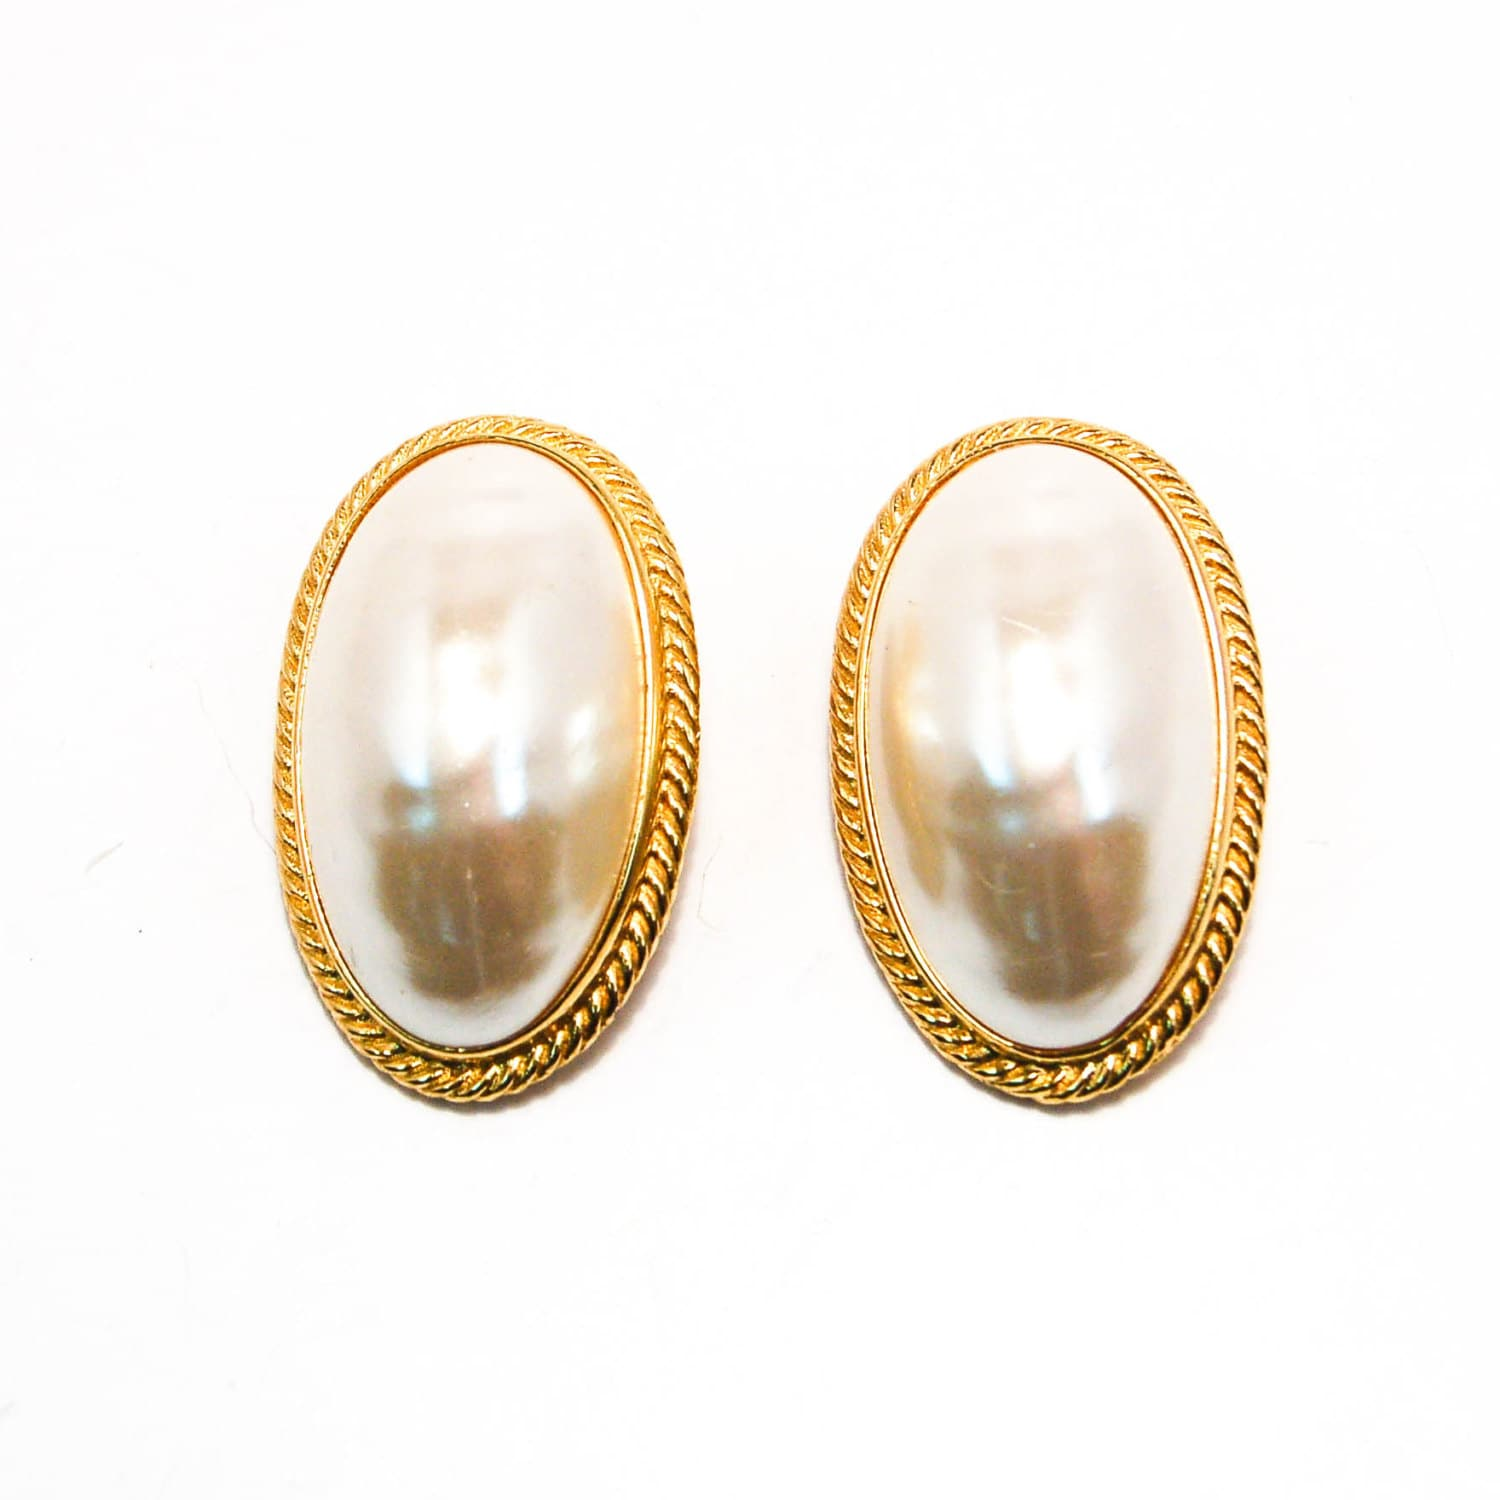 givenchy mabe pearl earrings large oval oversized couture